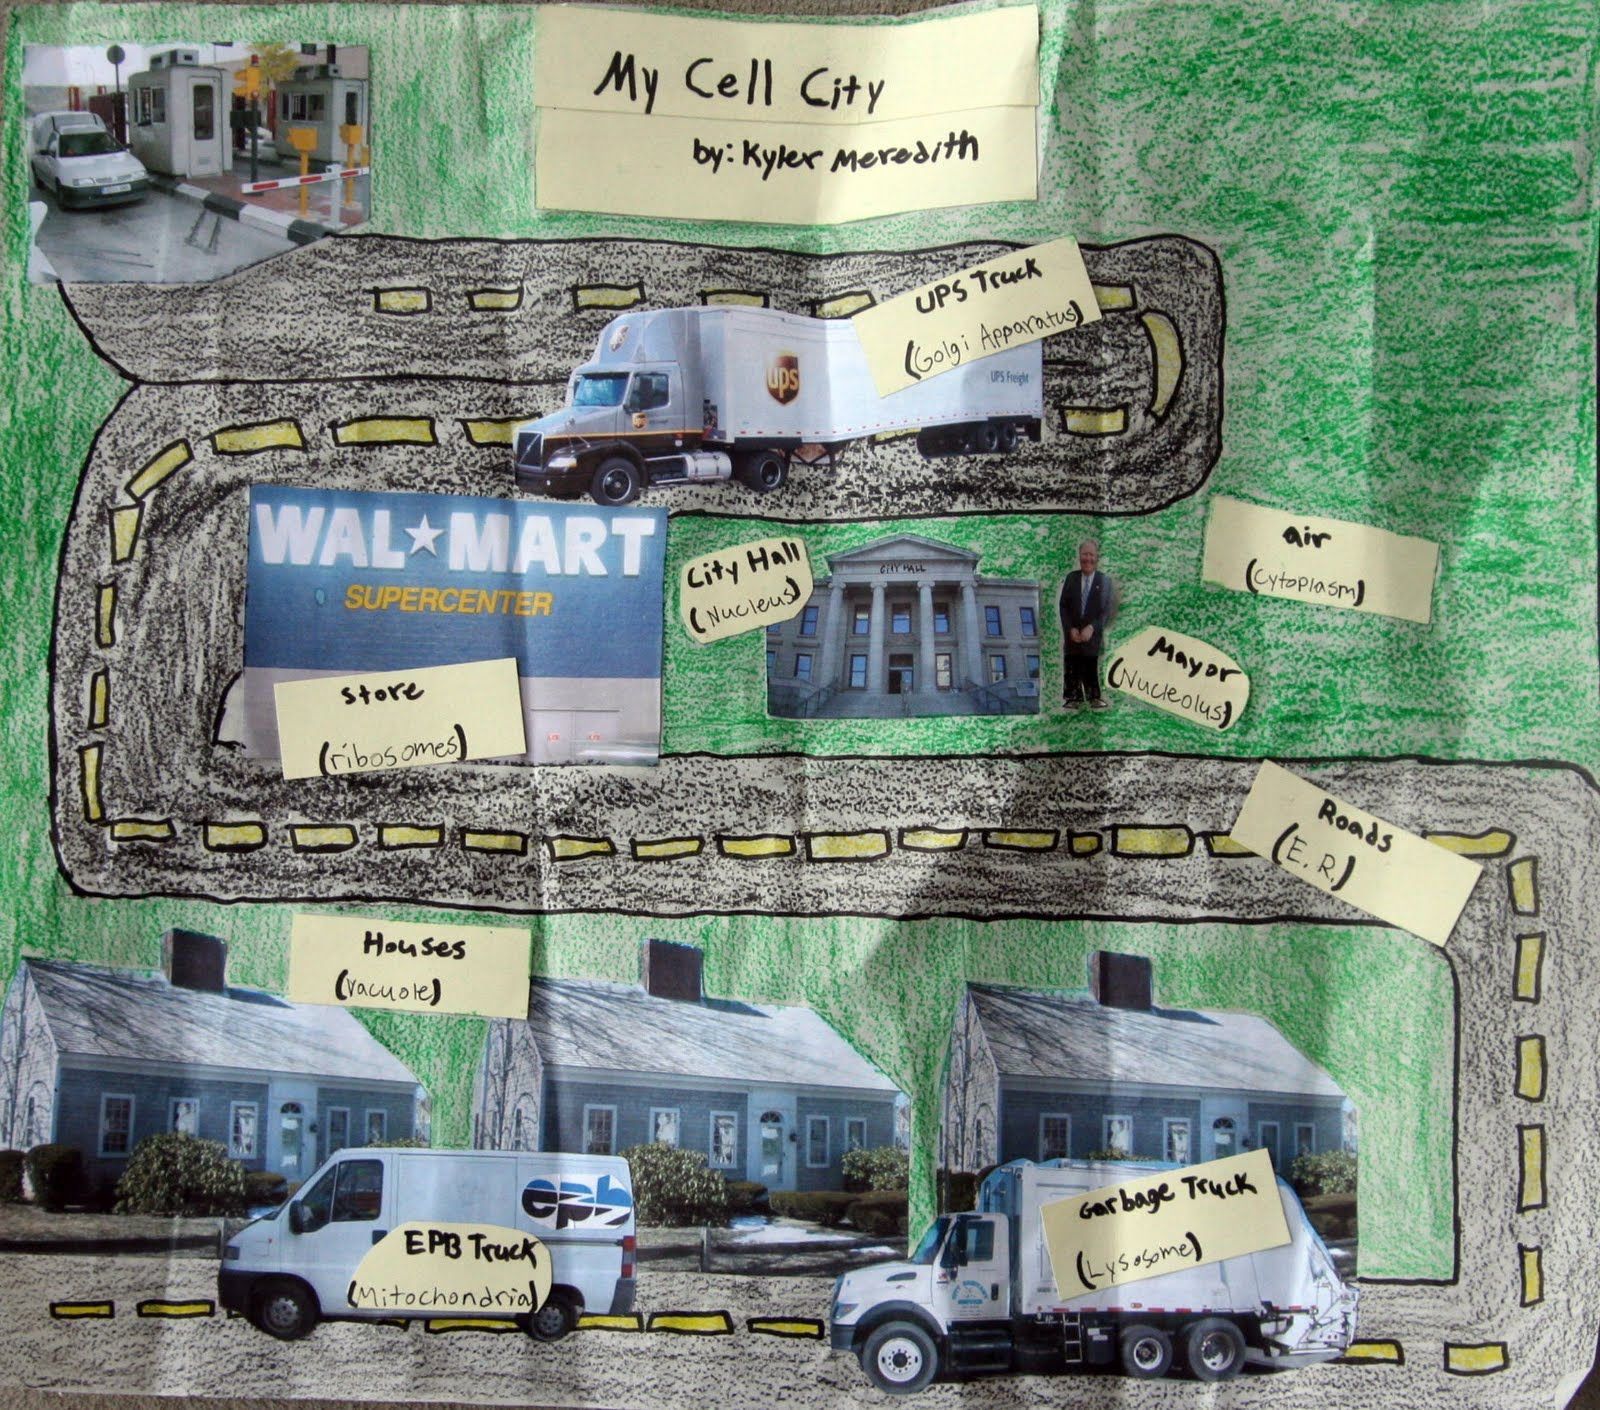 medium resolution of The Merediths: My Cell City by Kyler Meredith   Cell city